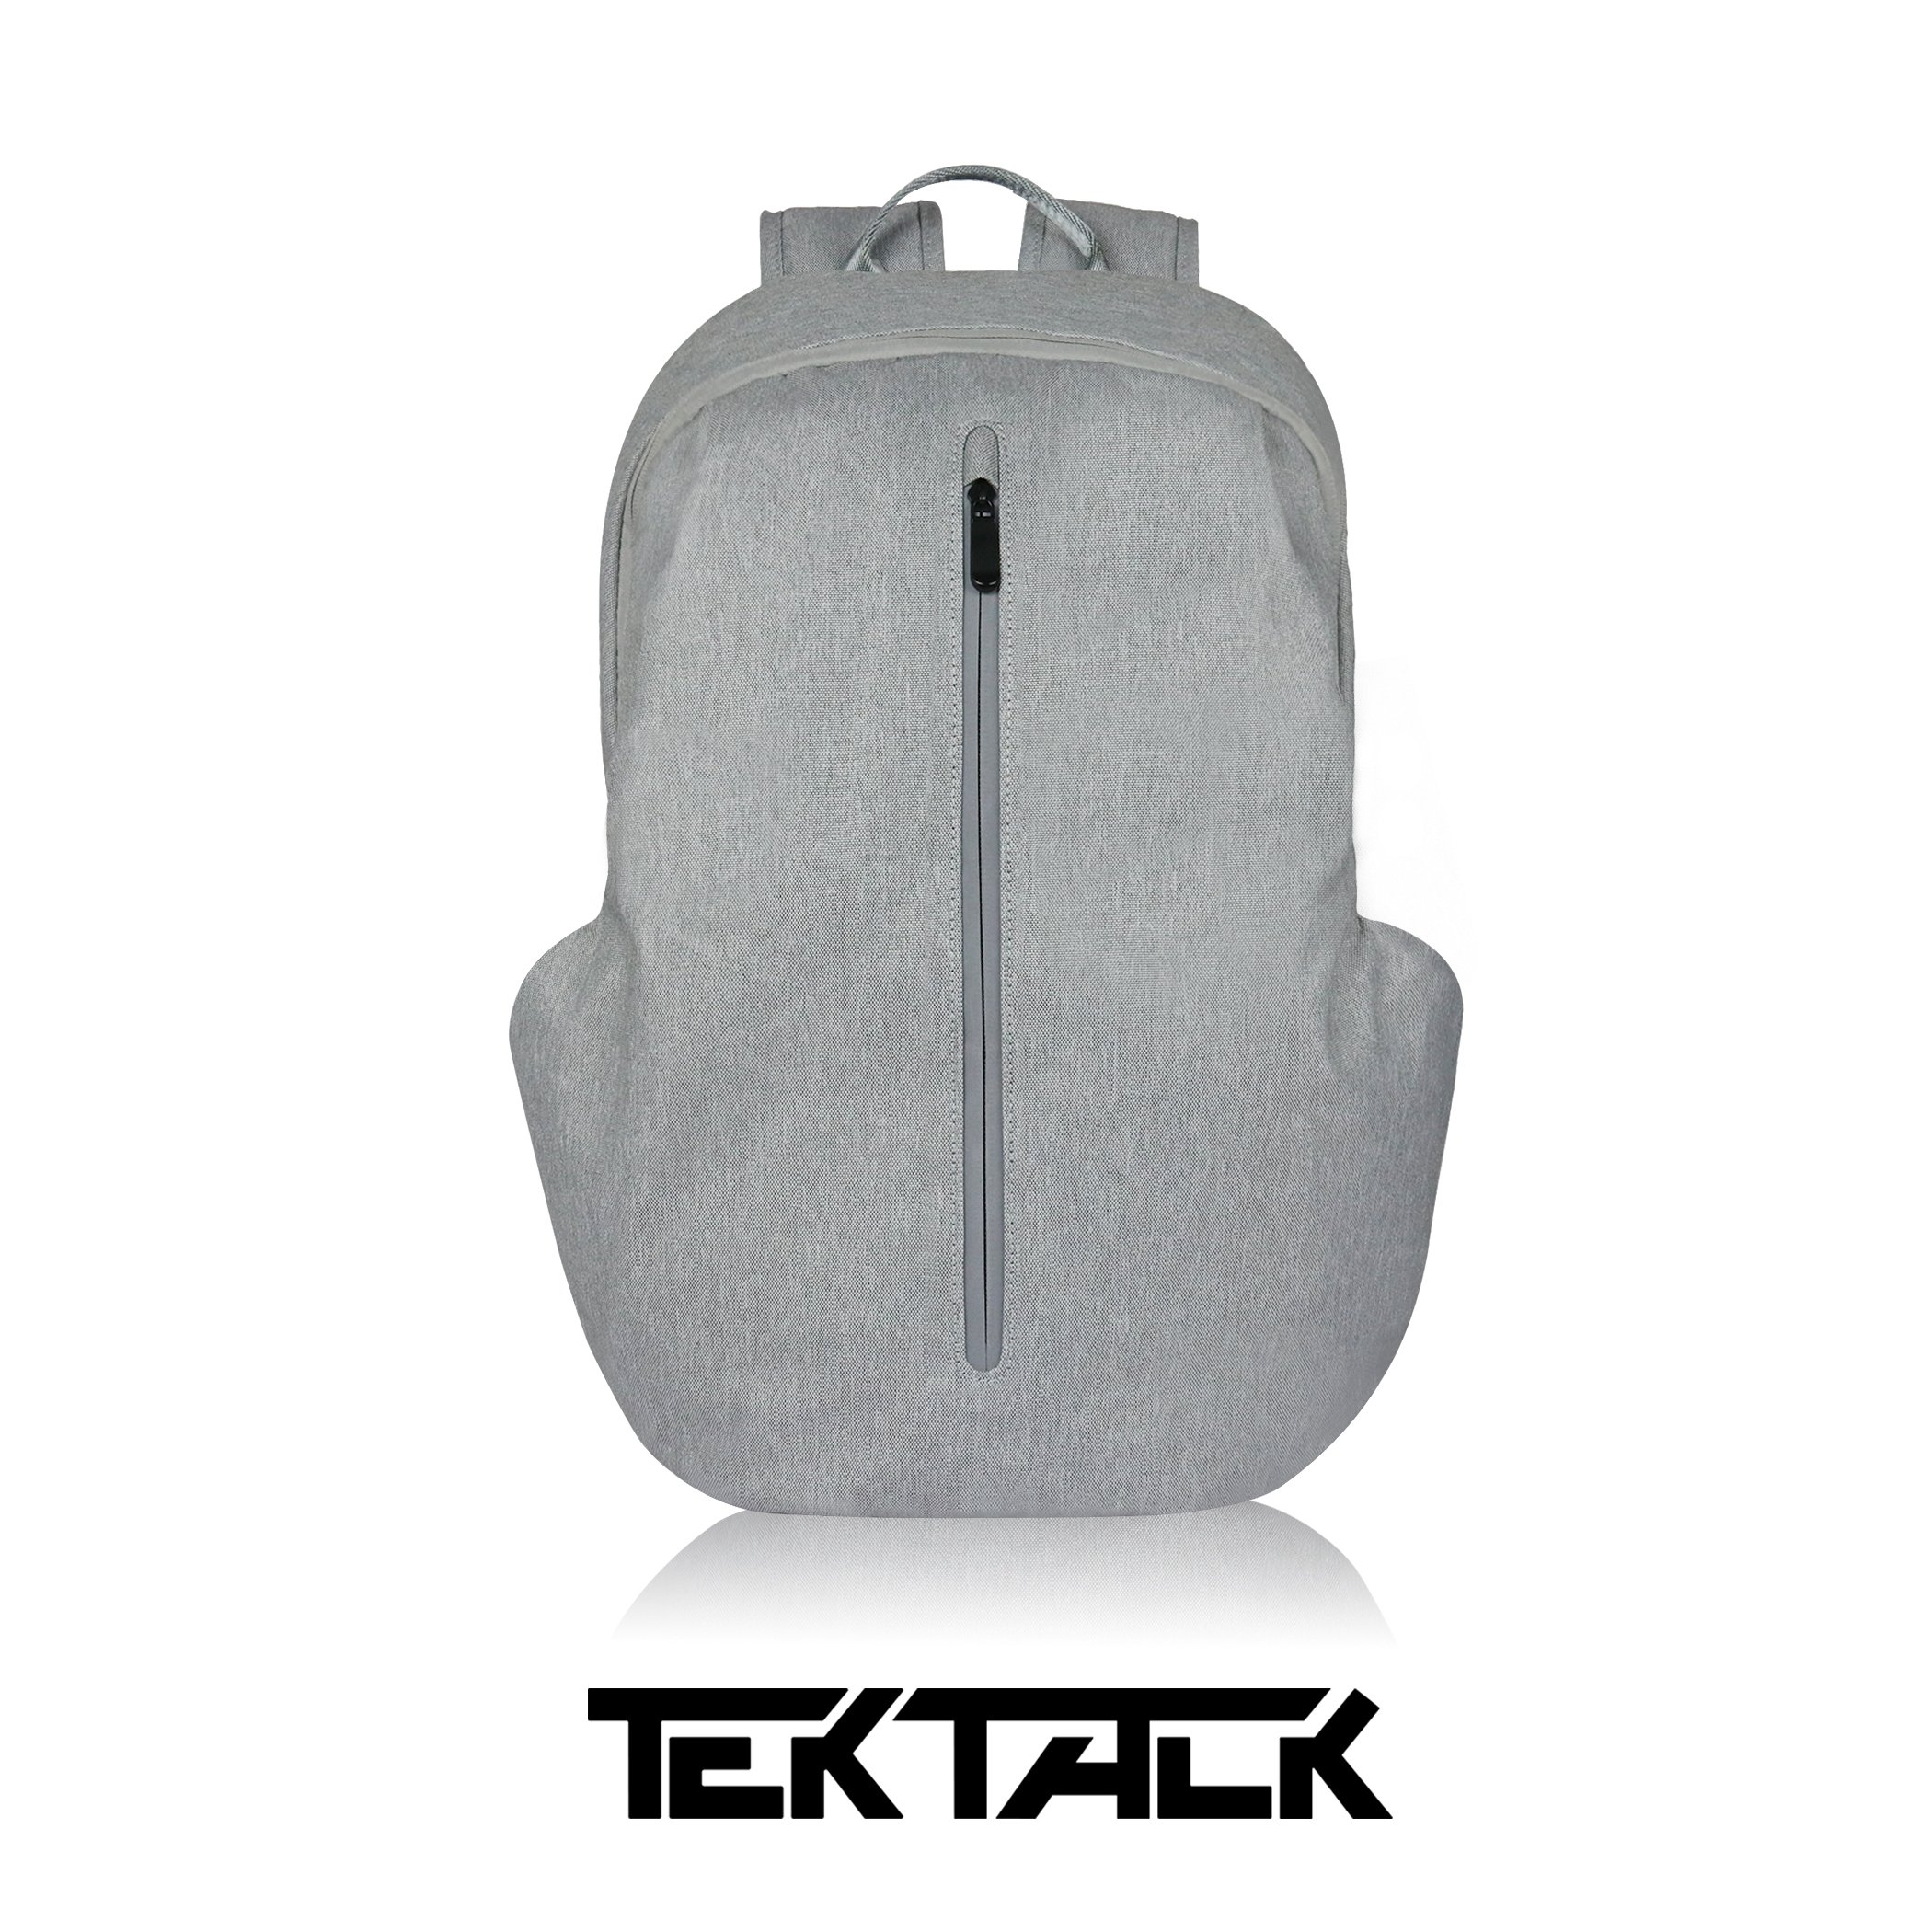 Tektalk Business Anti-theft Multifunctional Laptop Backpack, with USB Cable and Coded Lock, Durable & Lightweight, Suitable for Laptops up to 15.6 inches, for School / Travel / Work (Light Gray)